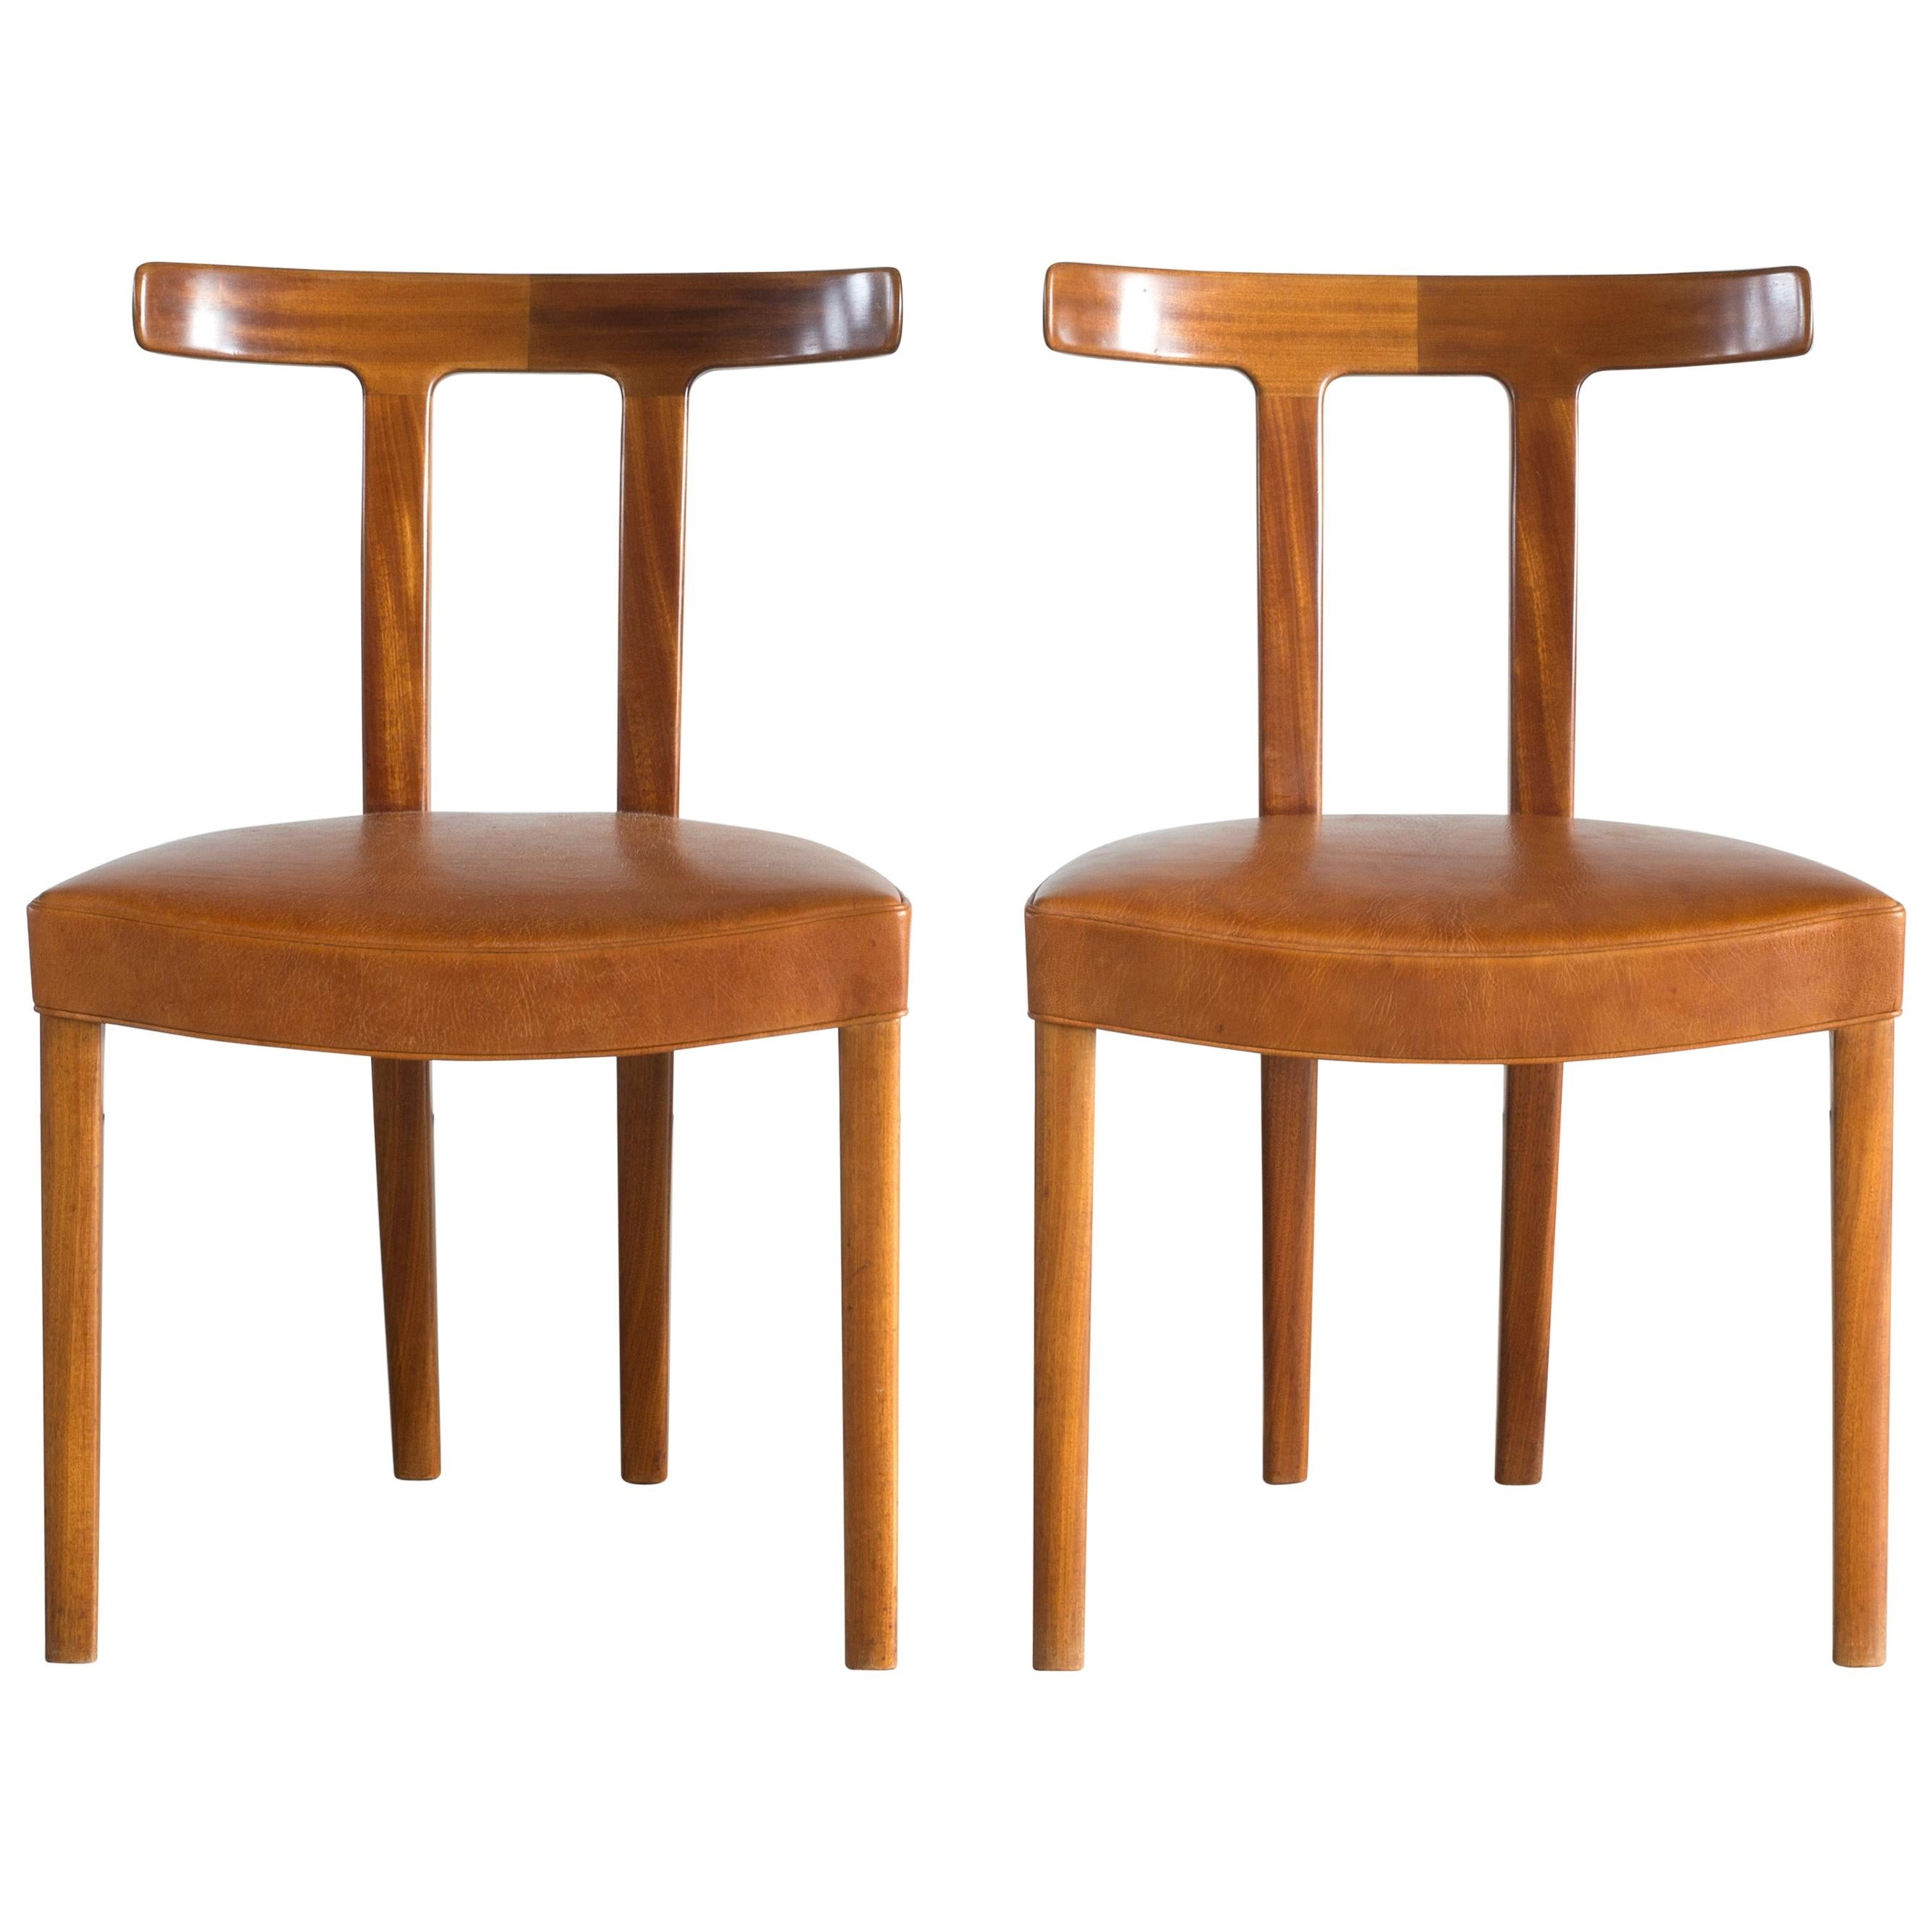 Ole Wanscher Pair of 'T' chairs for A.J. Iversen